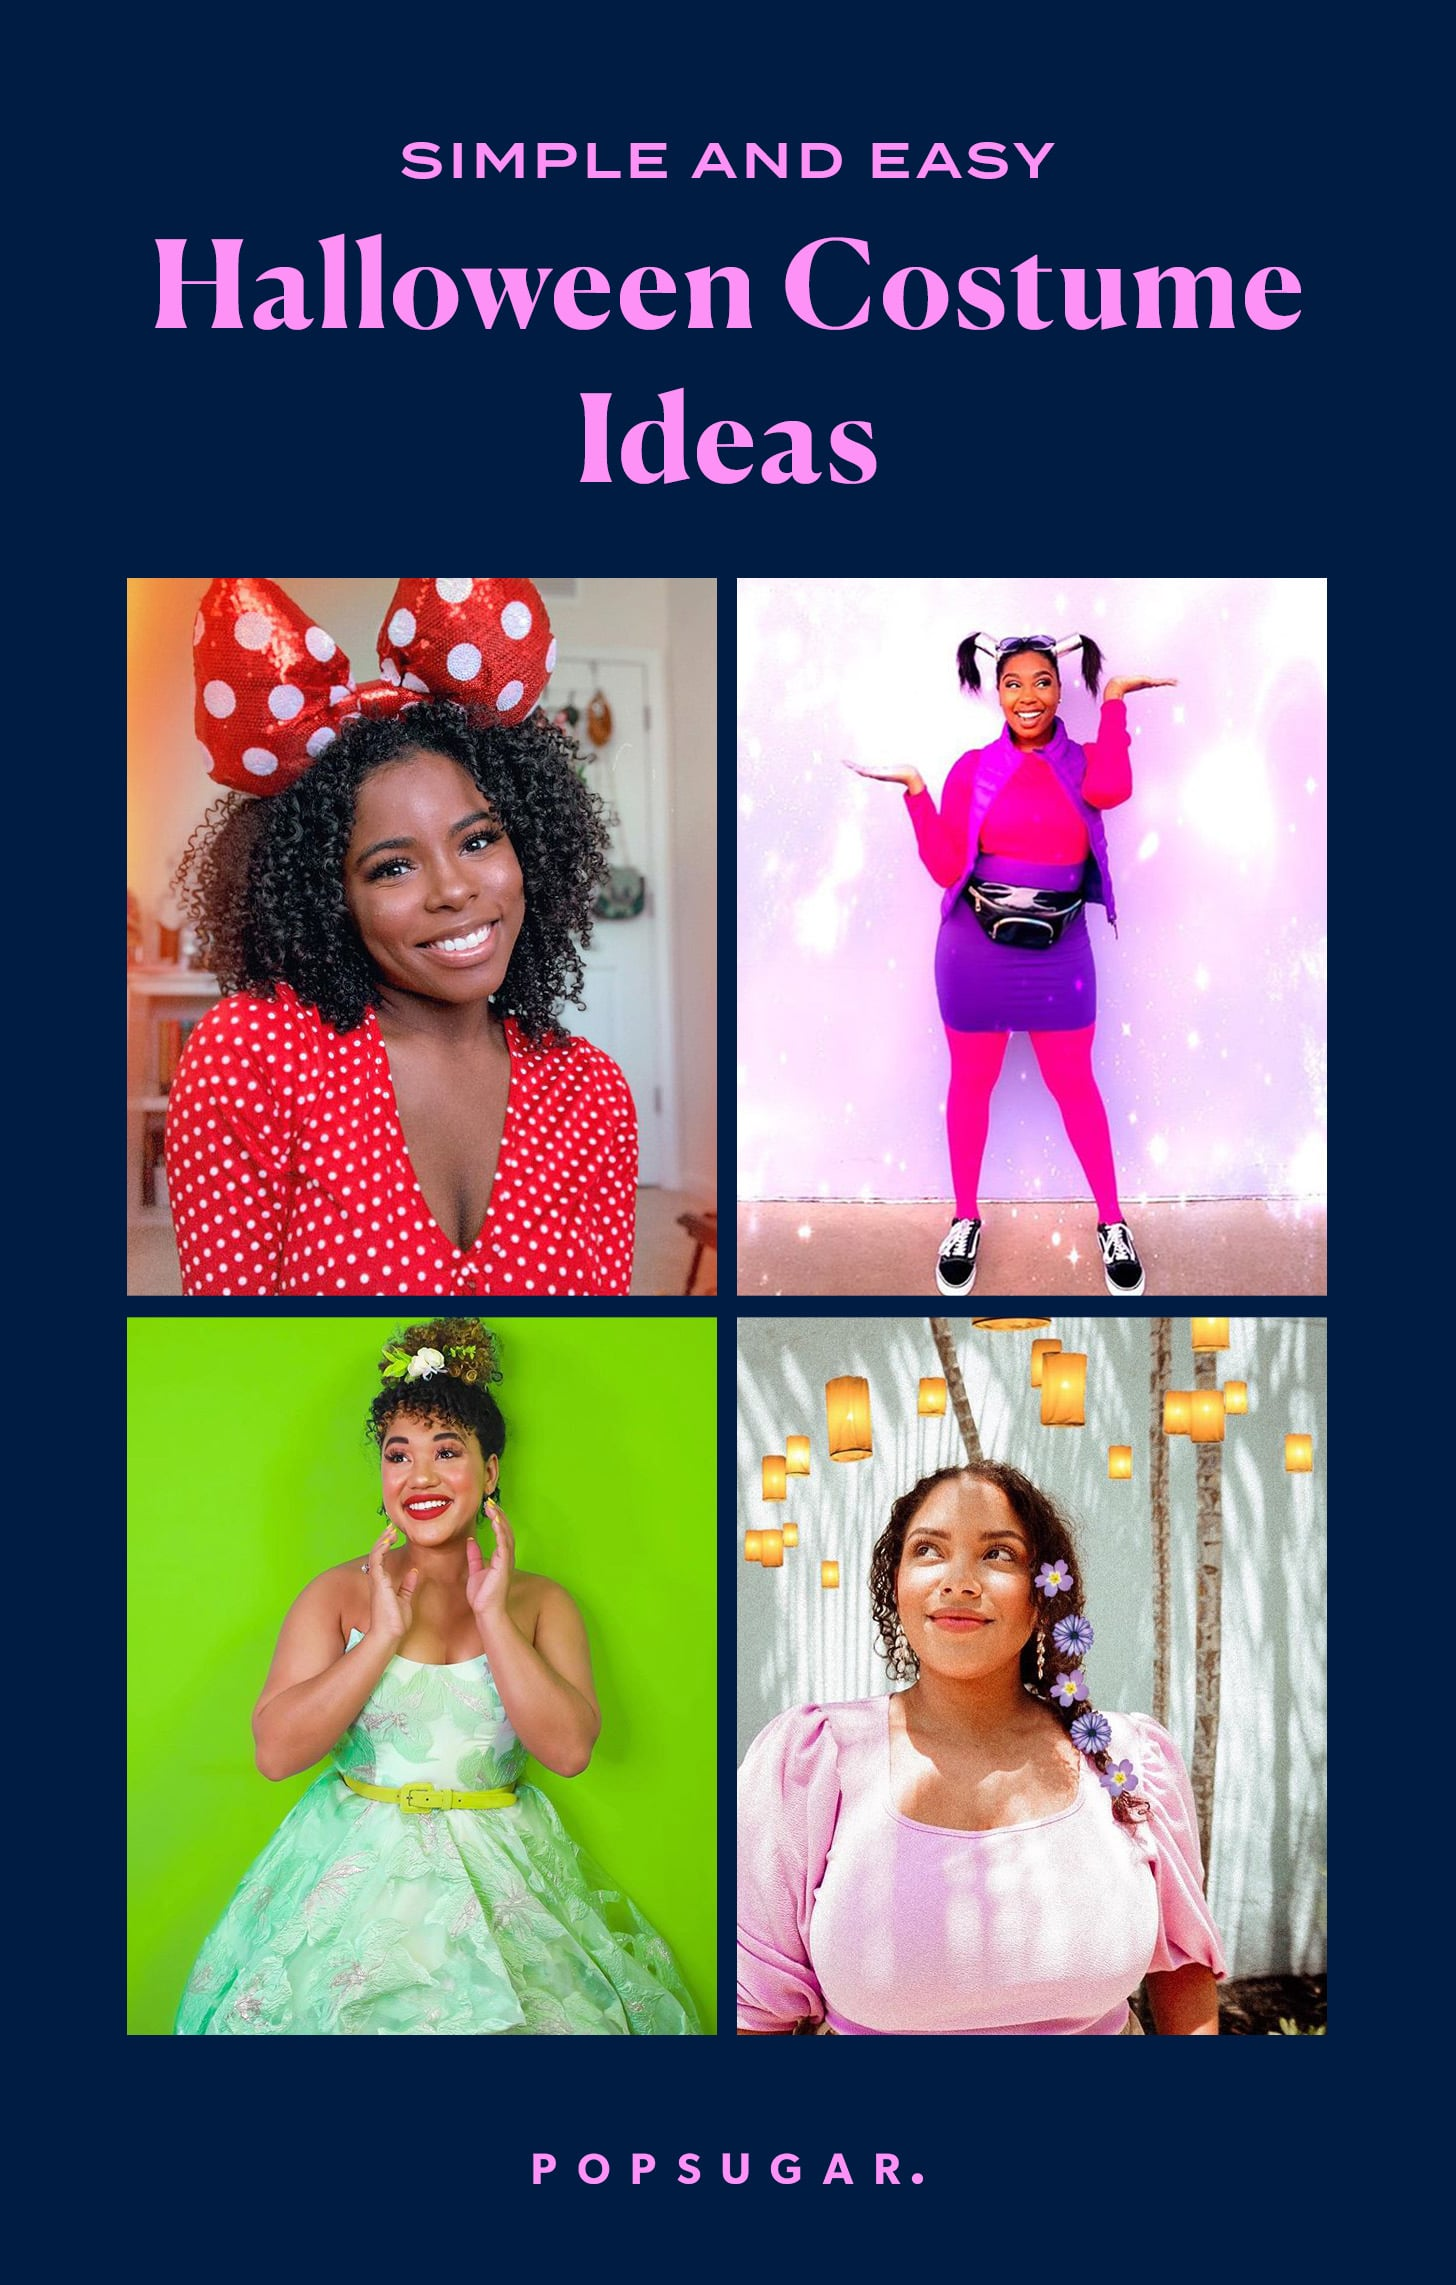 Easy But Good Halloween Costumes.Simple And Easy Halloween Costume Ideas Popsugar Smart Living